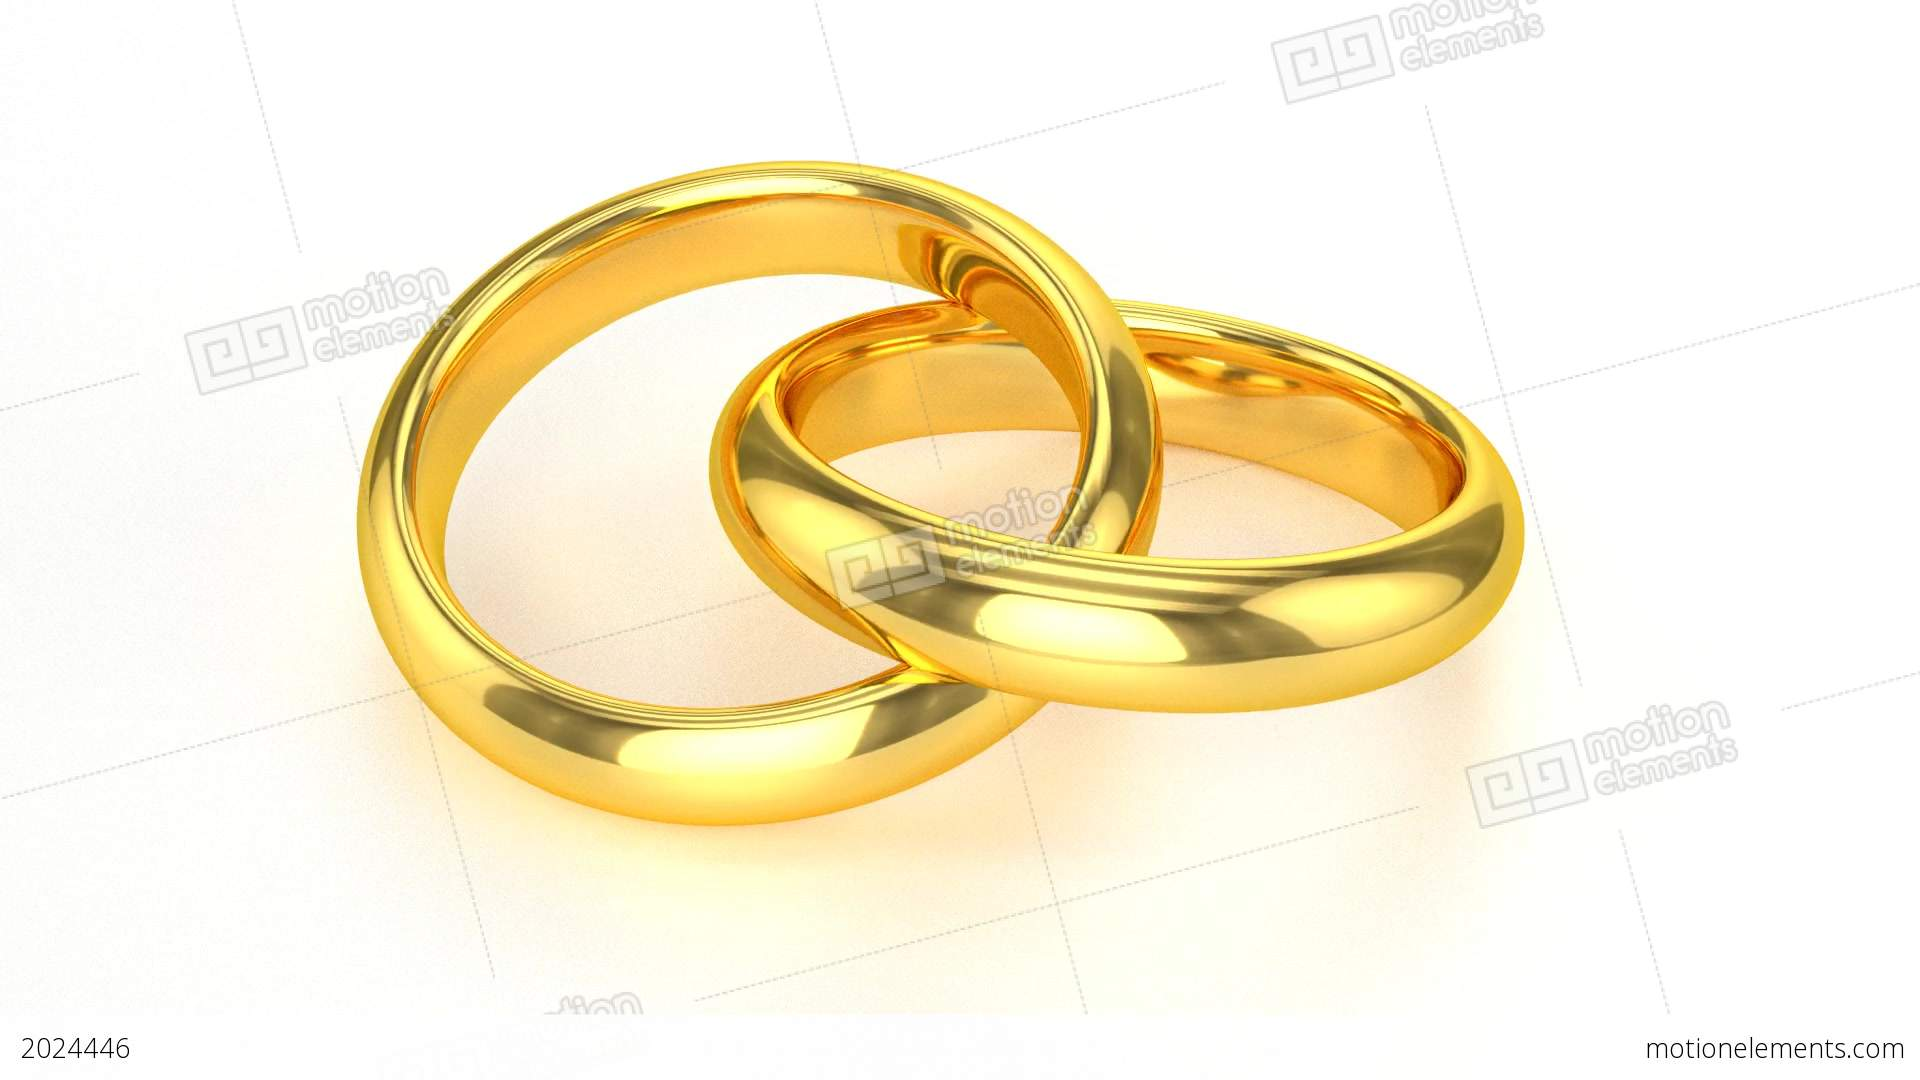 bands mens beers men jewellery wide rings court de wedding gold band golden s rose category